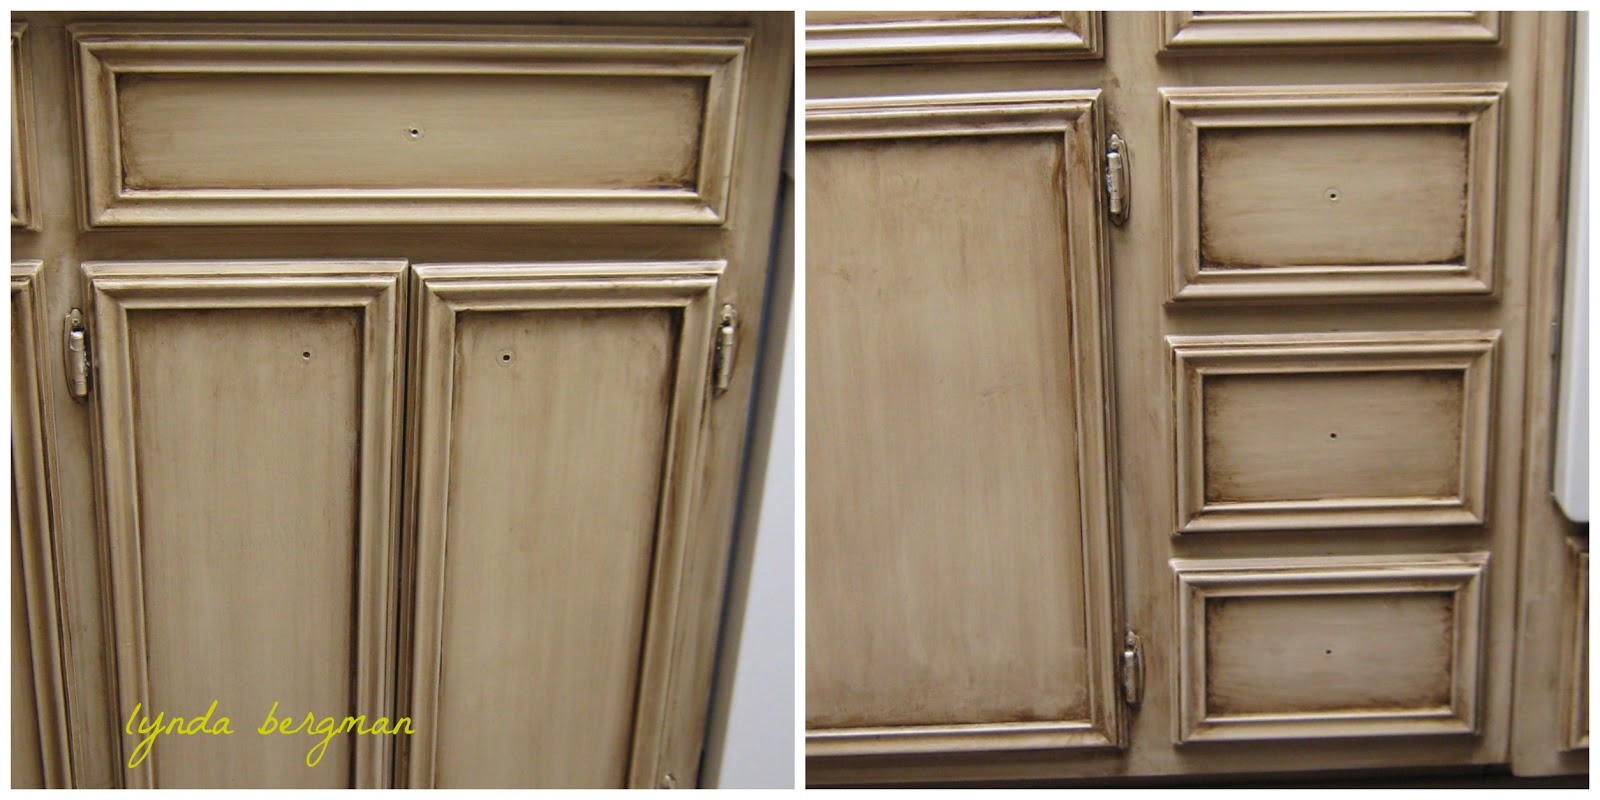 PAINTING A SPECIAL AGING ANTIQUING FINISH ON OLD KITCHEN CABINETS